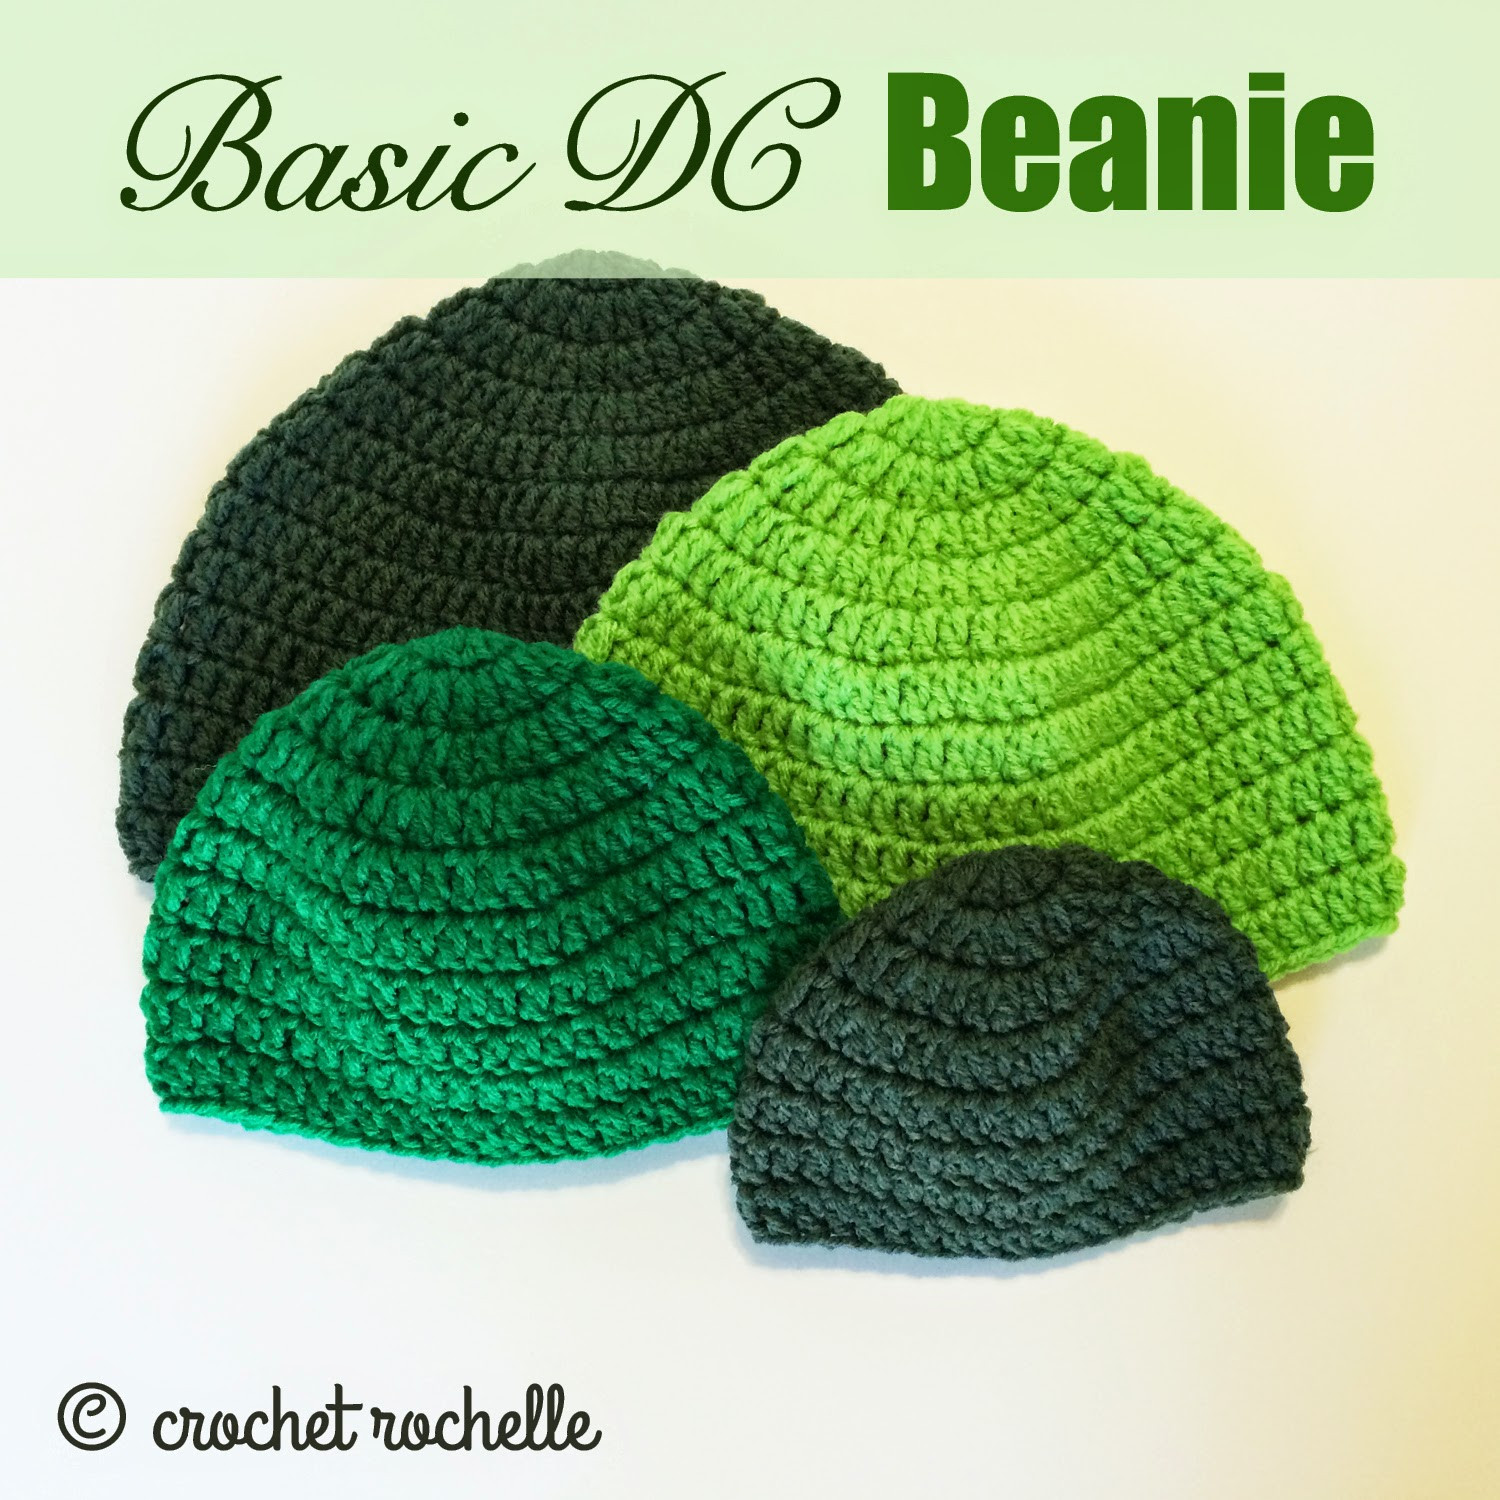 New Crochet Rochelle Basic Dc Beanie Pattern Beanie Pattern Of Perfect 47 Pics Beanie Pattern